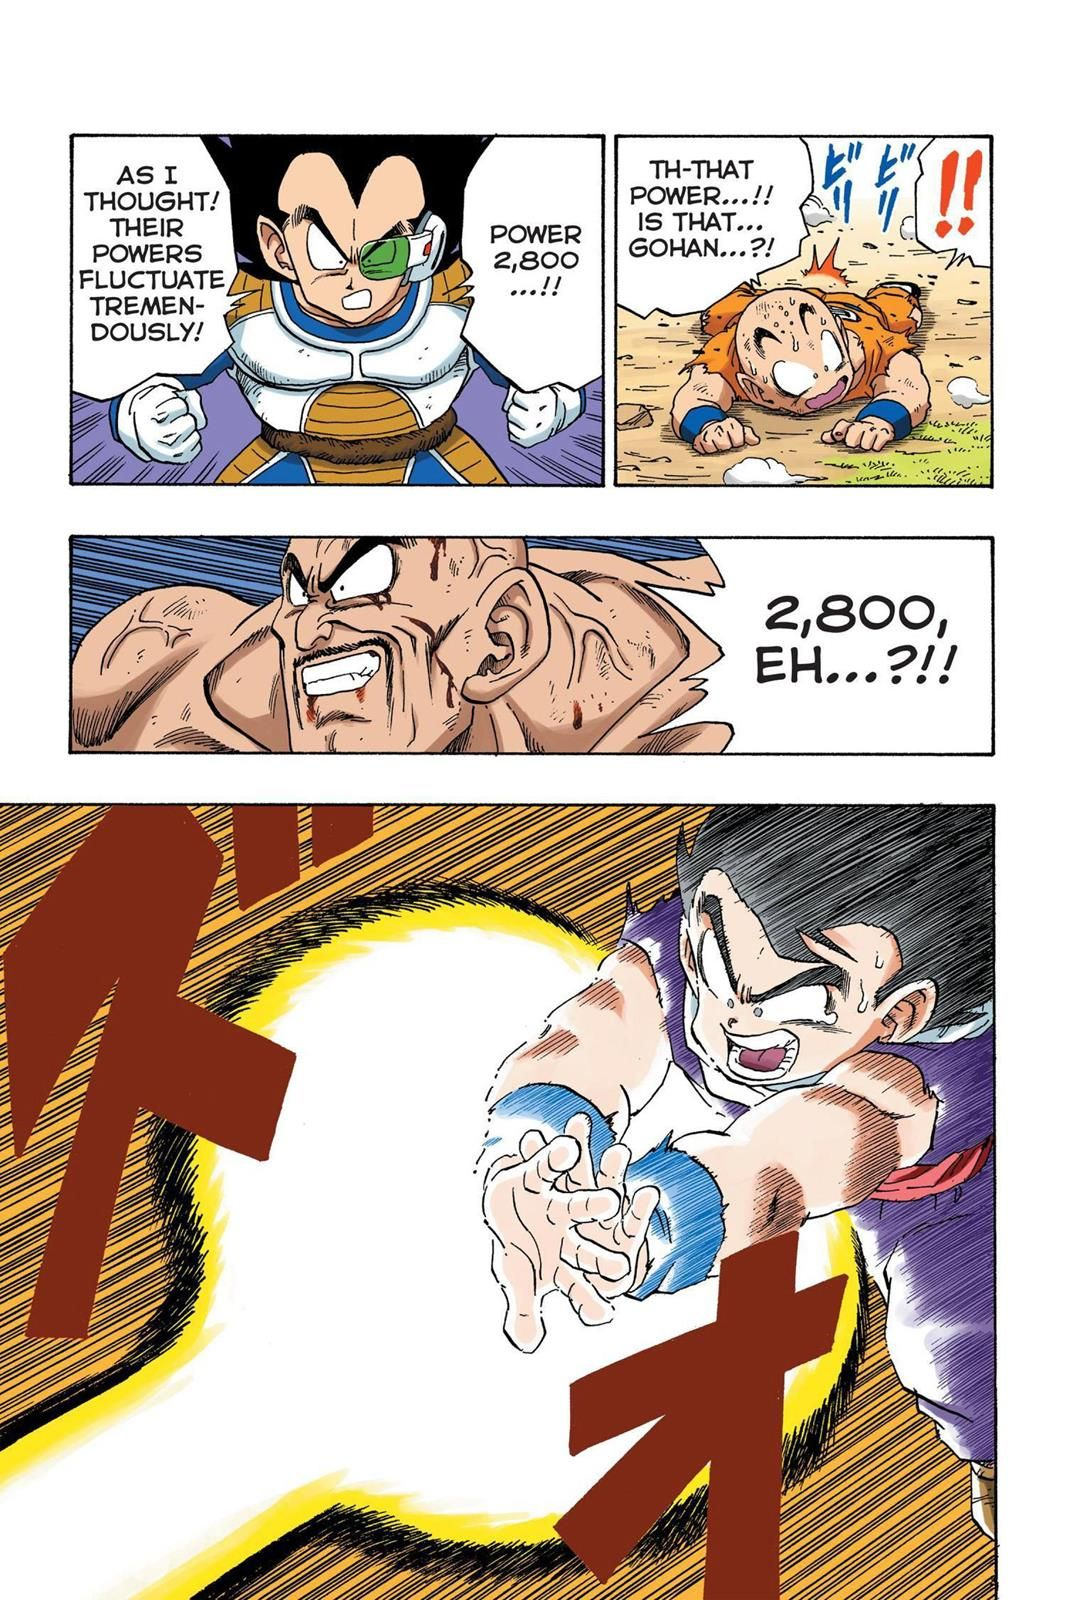 Color q online - Read Dragon Ball Full Color Saiyan Arc Chapter 30 Page 4 Online For Free